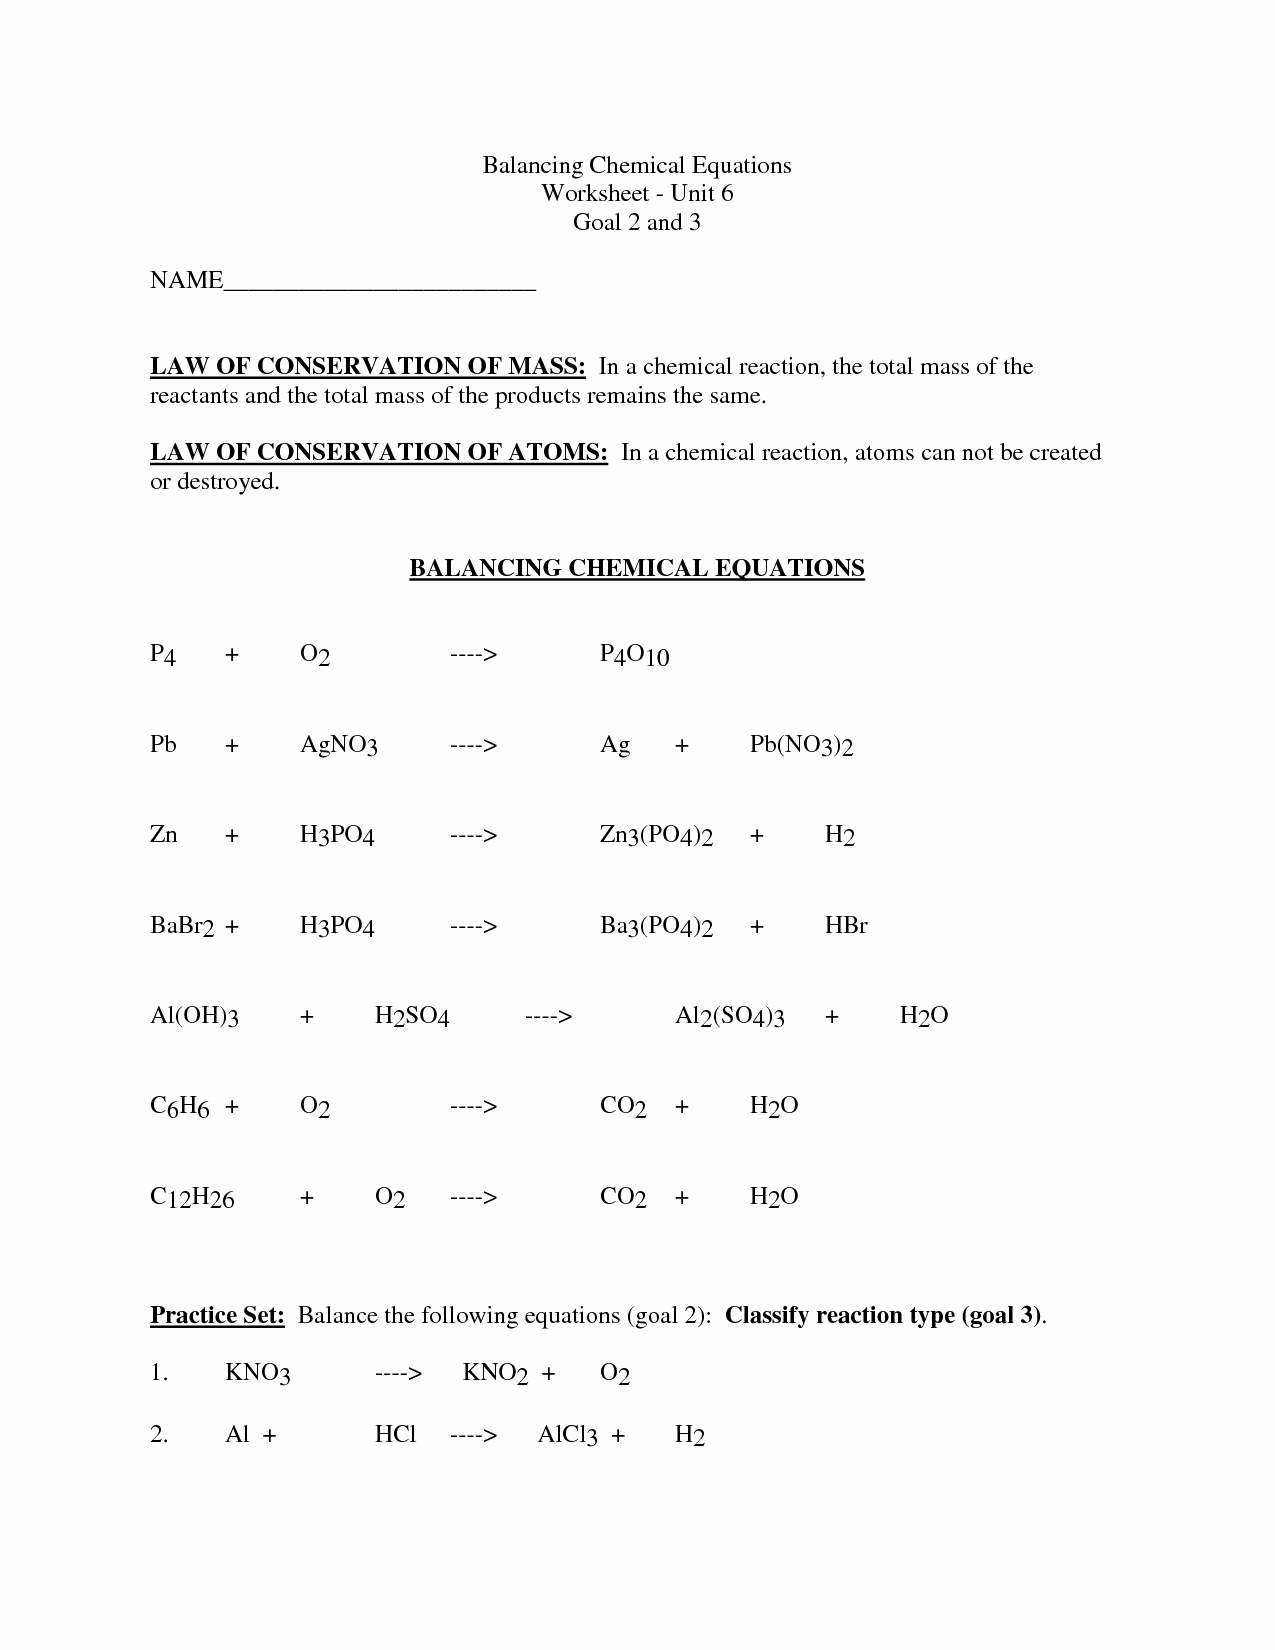 Worksheet Balancing Equations Answers Lovely 12 Best Of Balancing Chemical Equations Worksheet